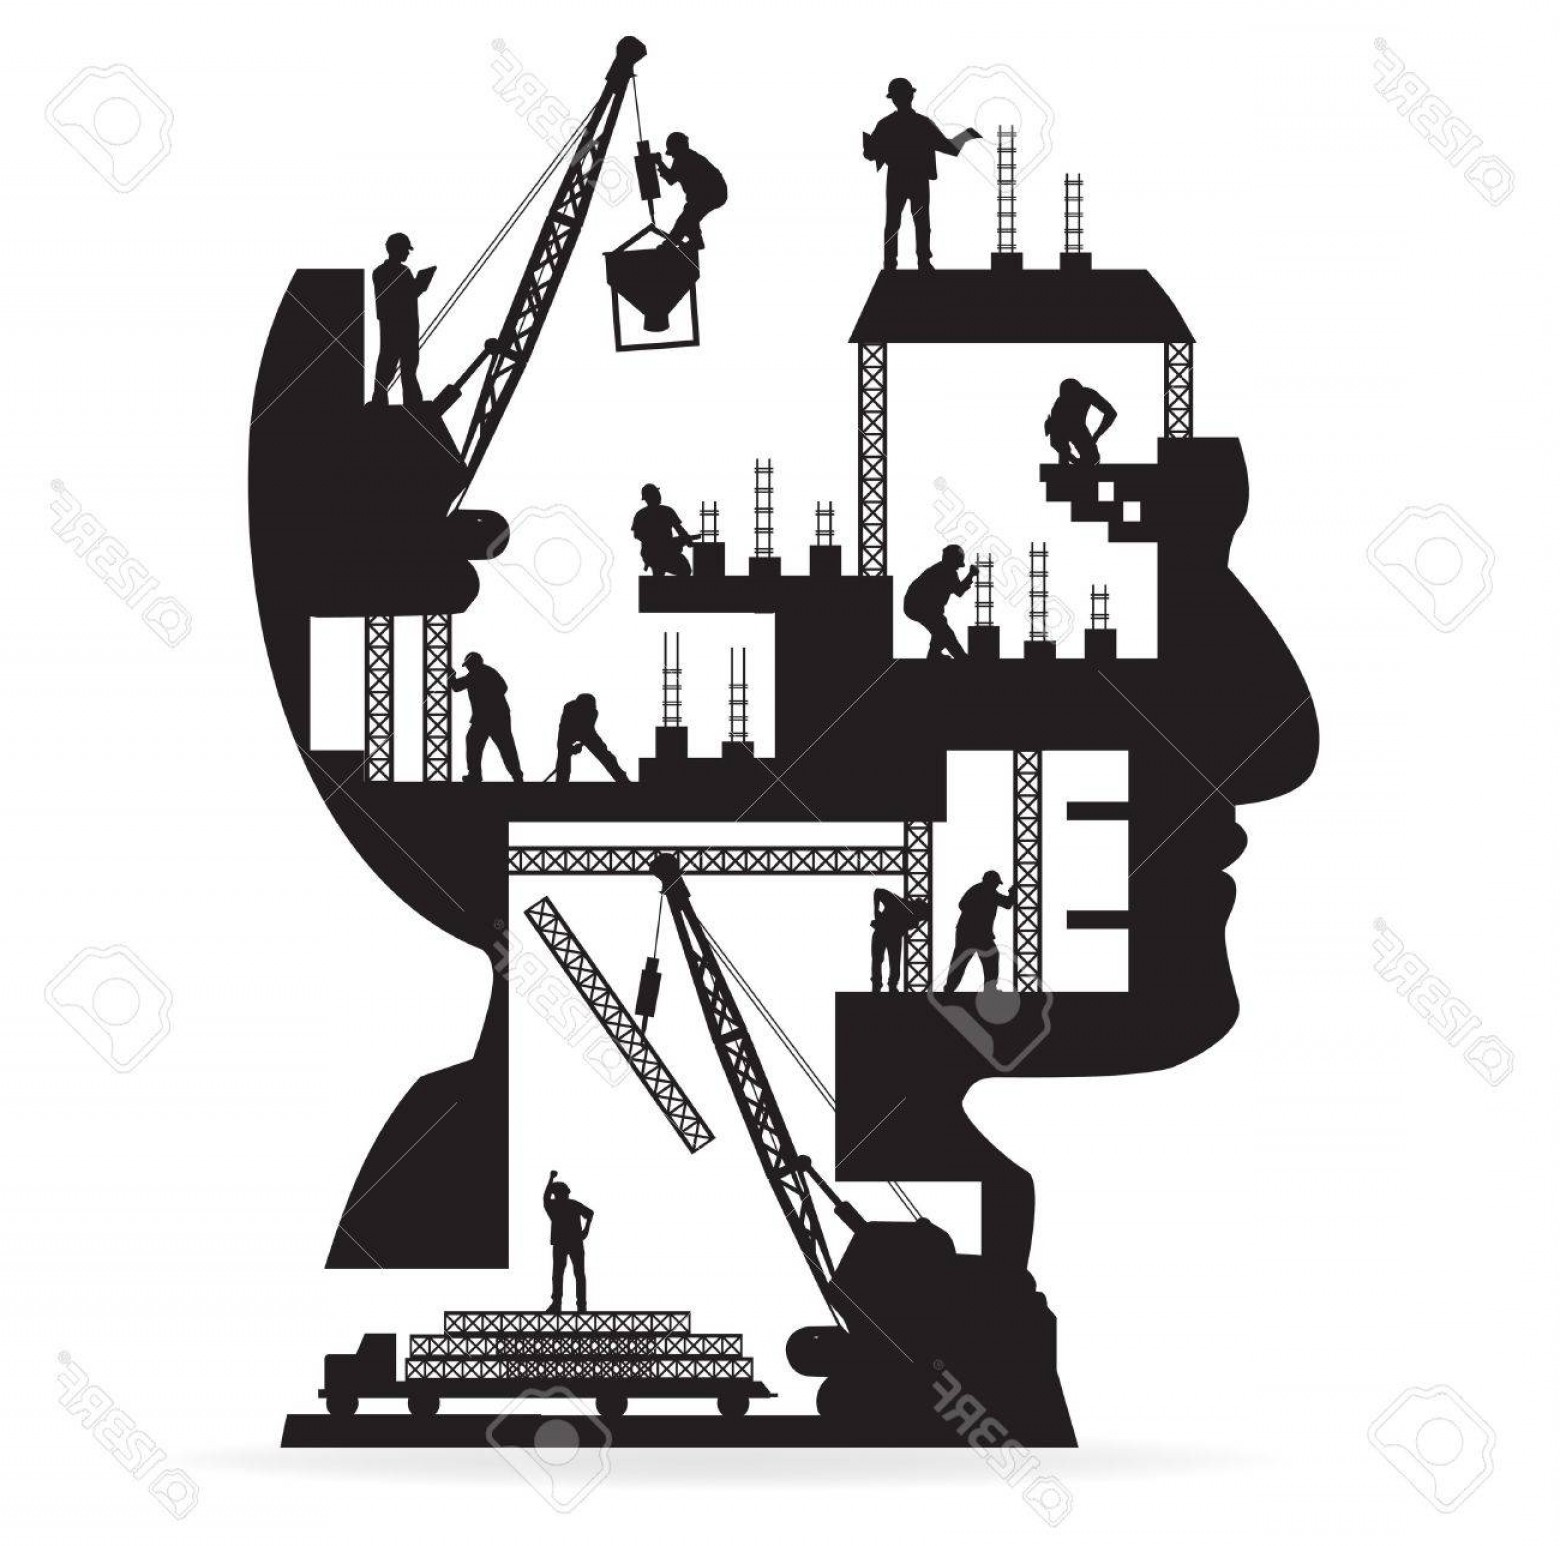 Vector Under Construction Template: Photobuilding Under Construction With Workers In Silhouette Of A Head Vector Illustration Template Design